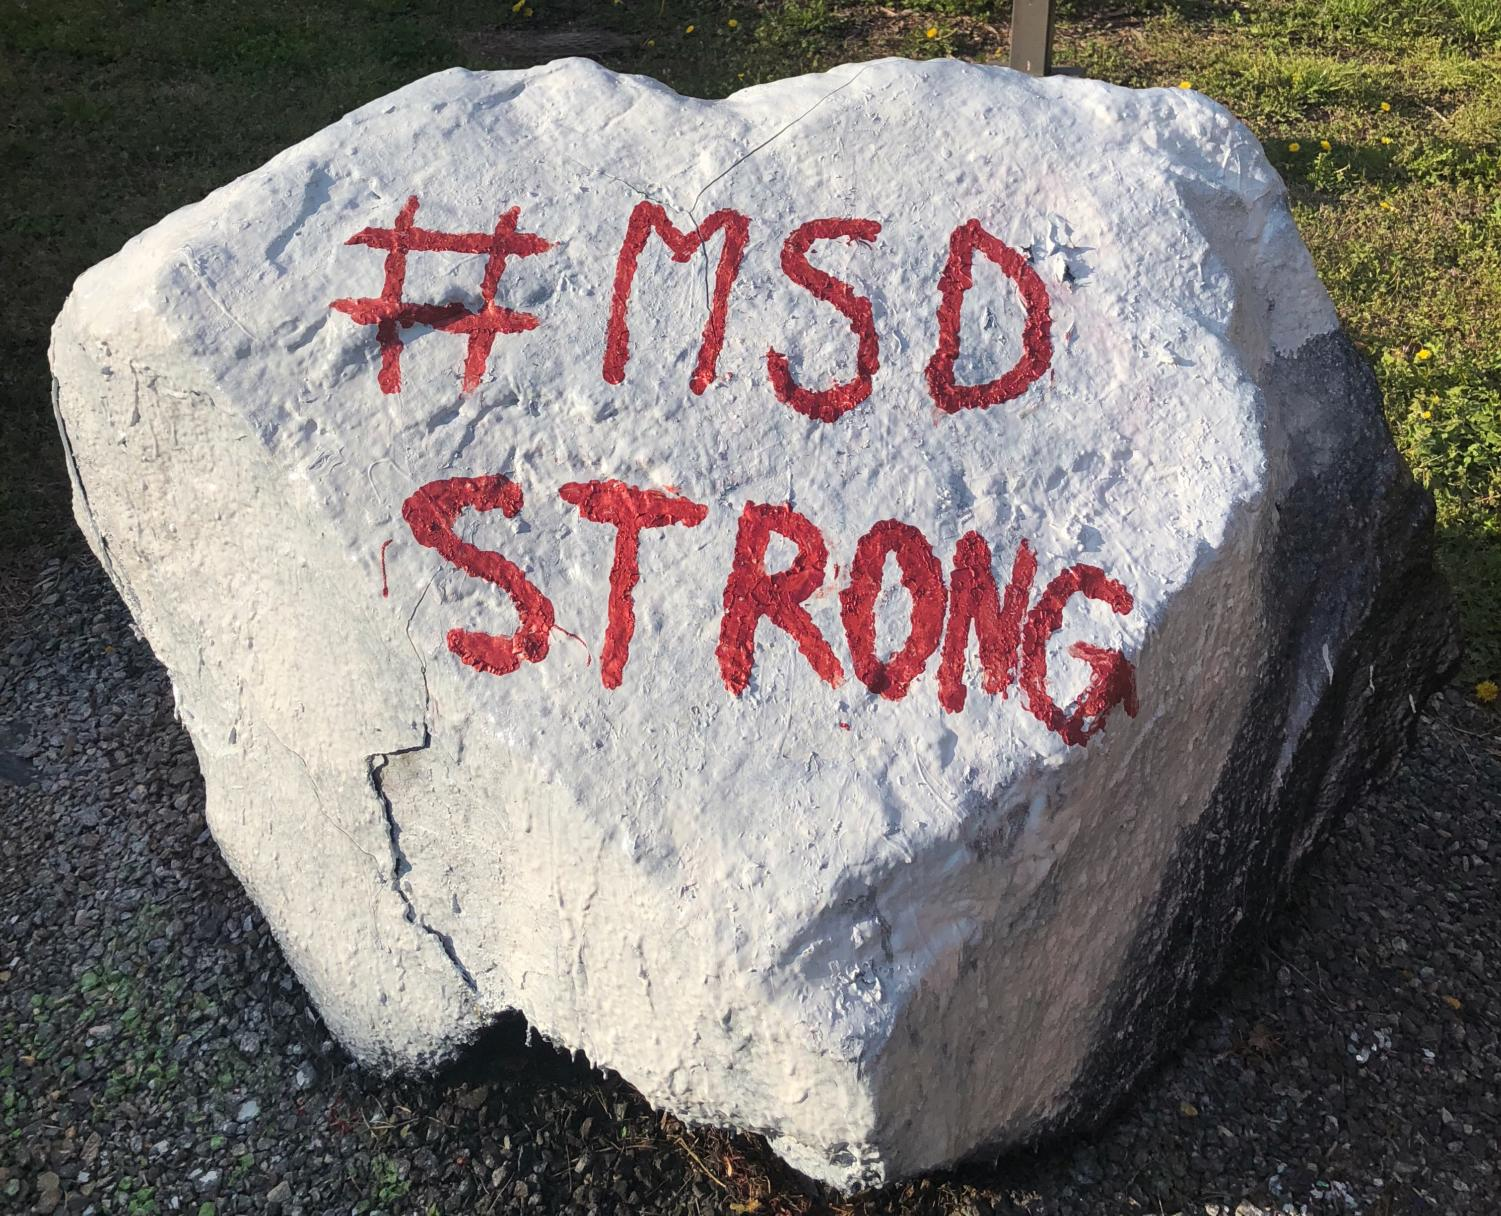 Lafayette's rock bears a message of solidarity after the Parkland shooting.